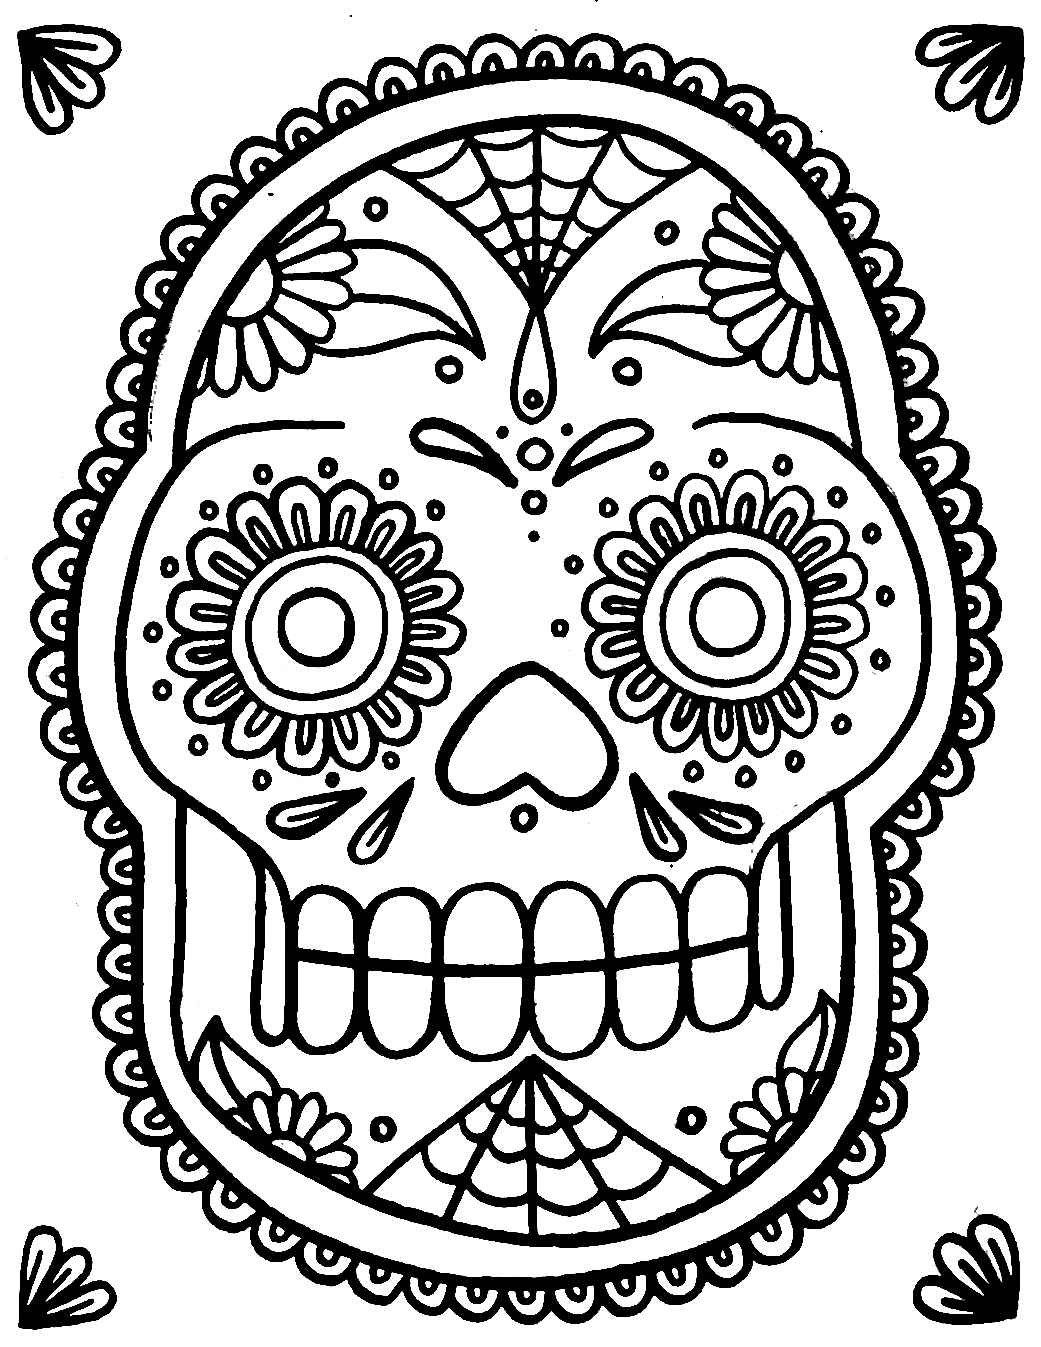 candy skull coloring pages yucca flats nm wenchkin39s coloring pages sugar skull candy skull coloring pages